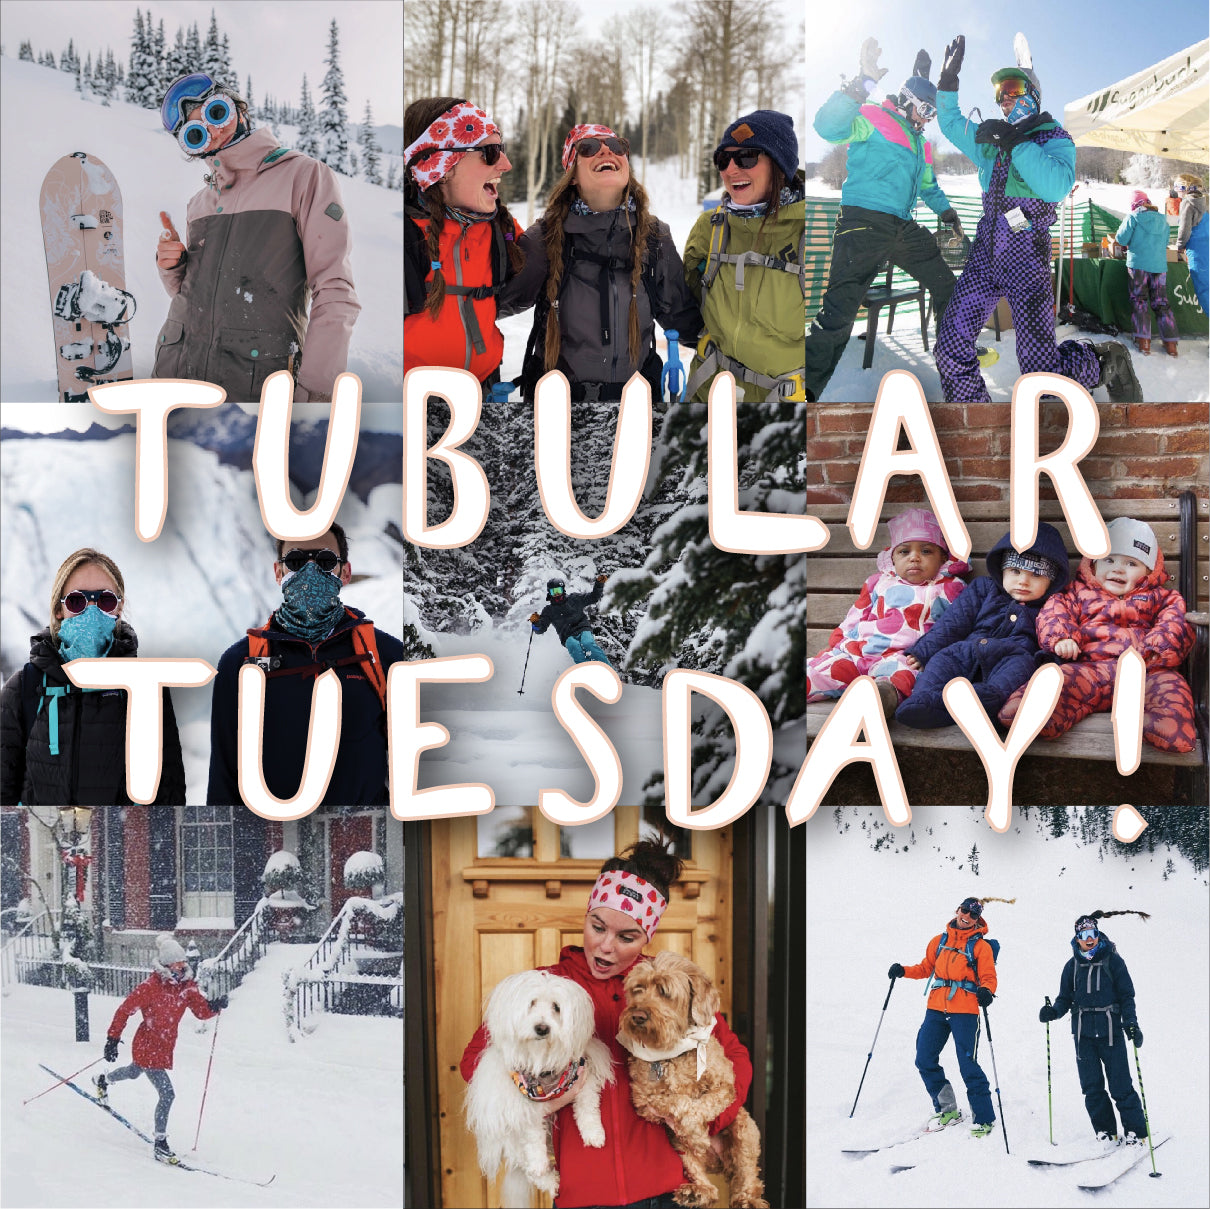 Tubular Tuesday 2019 - All you need to know!